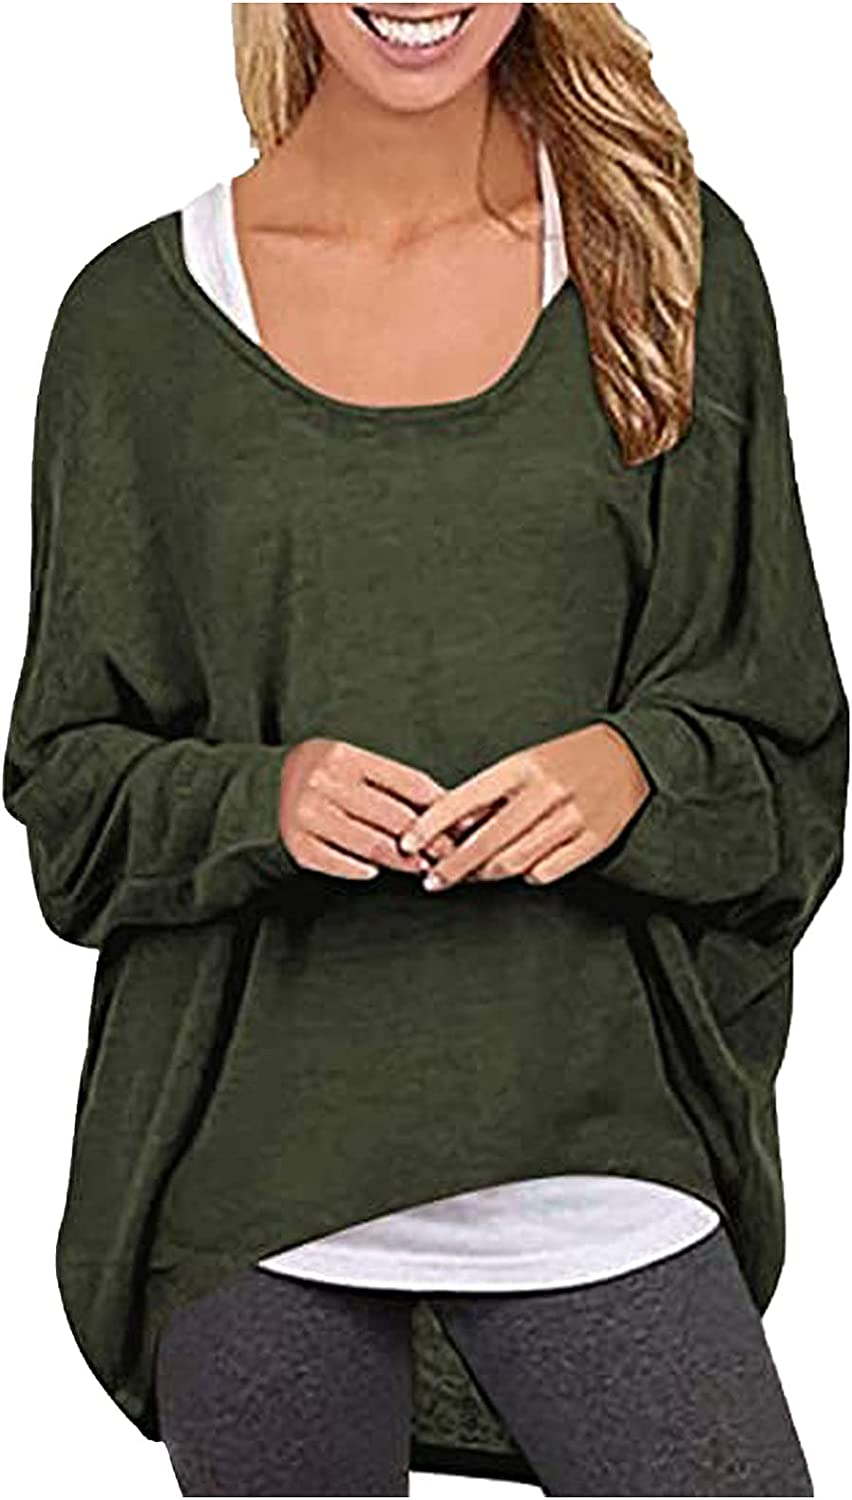 Womens Long Sleeve Tops Soild Baggy Off Shoulder Pullover T Shirt Oversized Casual Blouse Autumn Winter Comfy Shirts